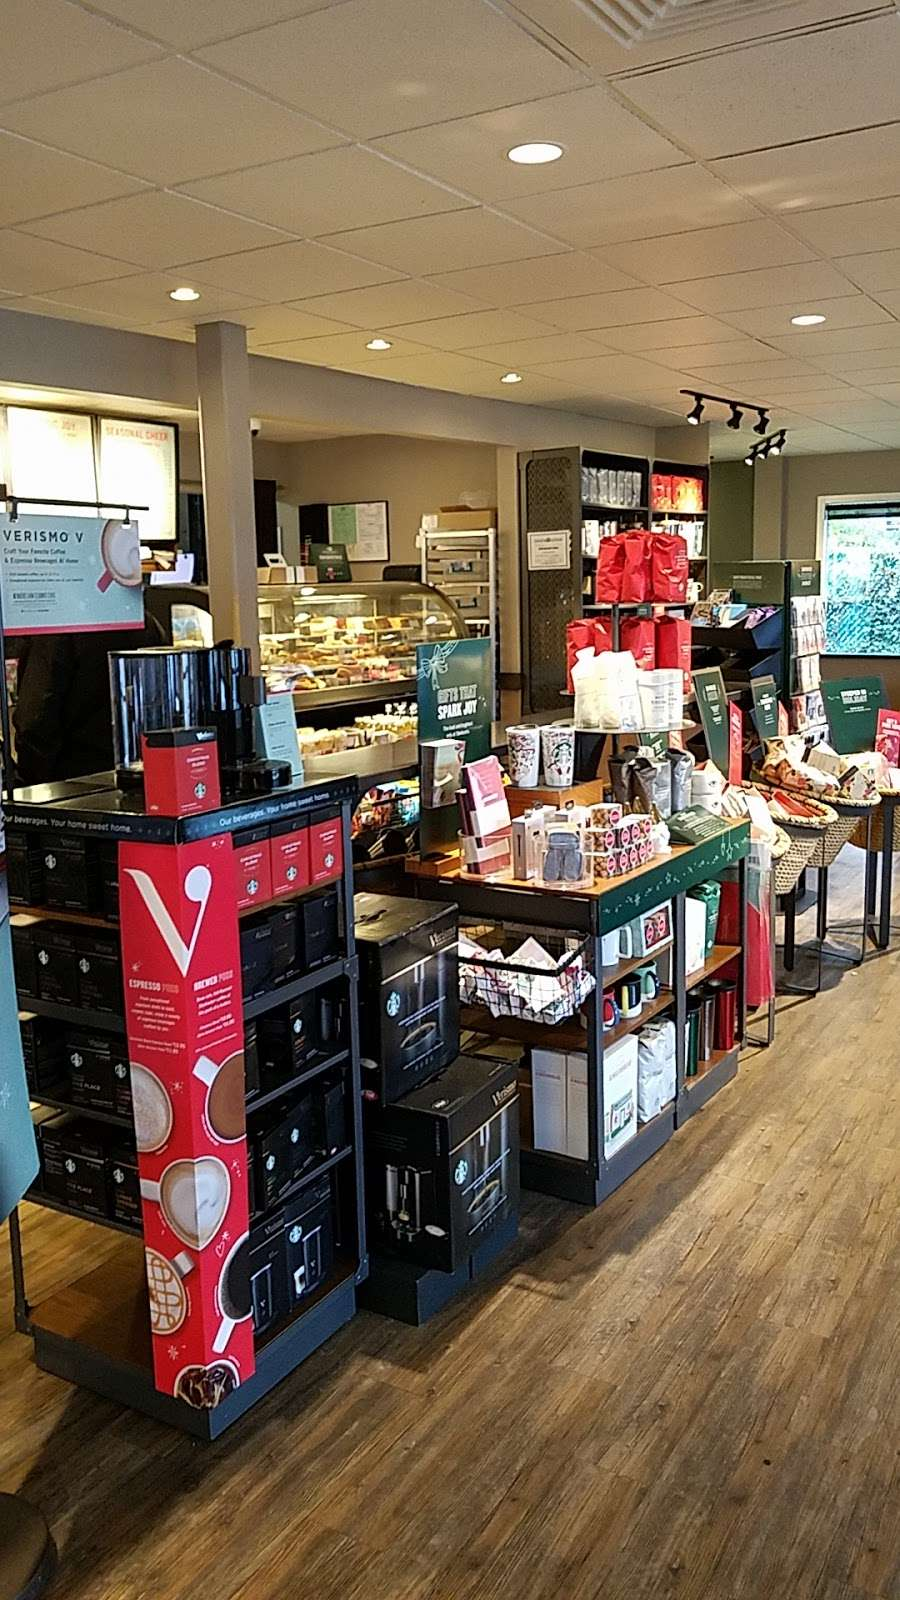 Starbucks - cafe  | Photo 9 of 10 | Address: 201-211 NJ-17, Hasbrouck Heights, NJ 07604, USA | Phone: (201) 288-7812